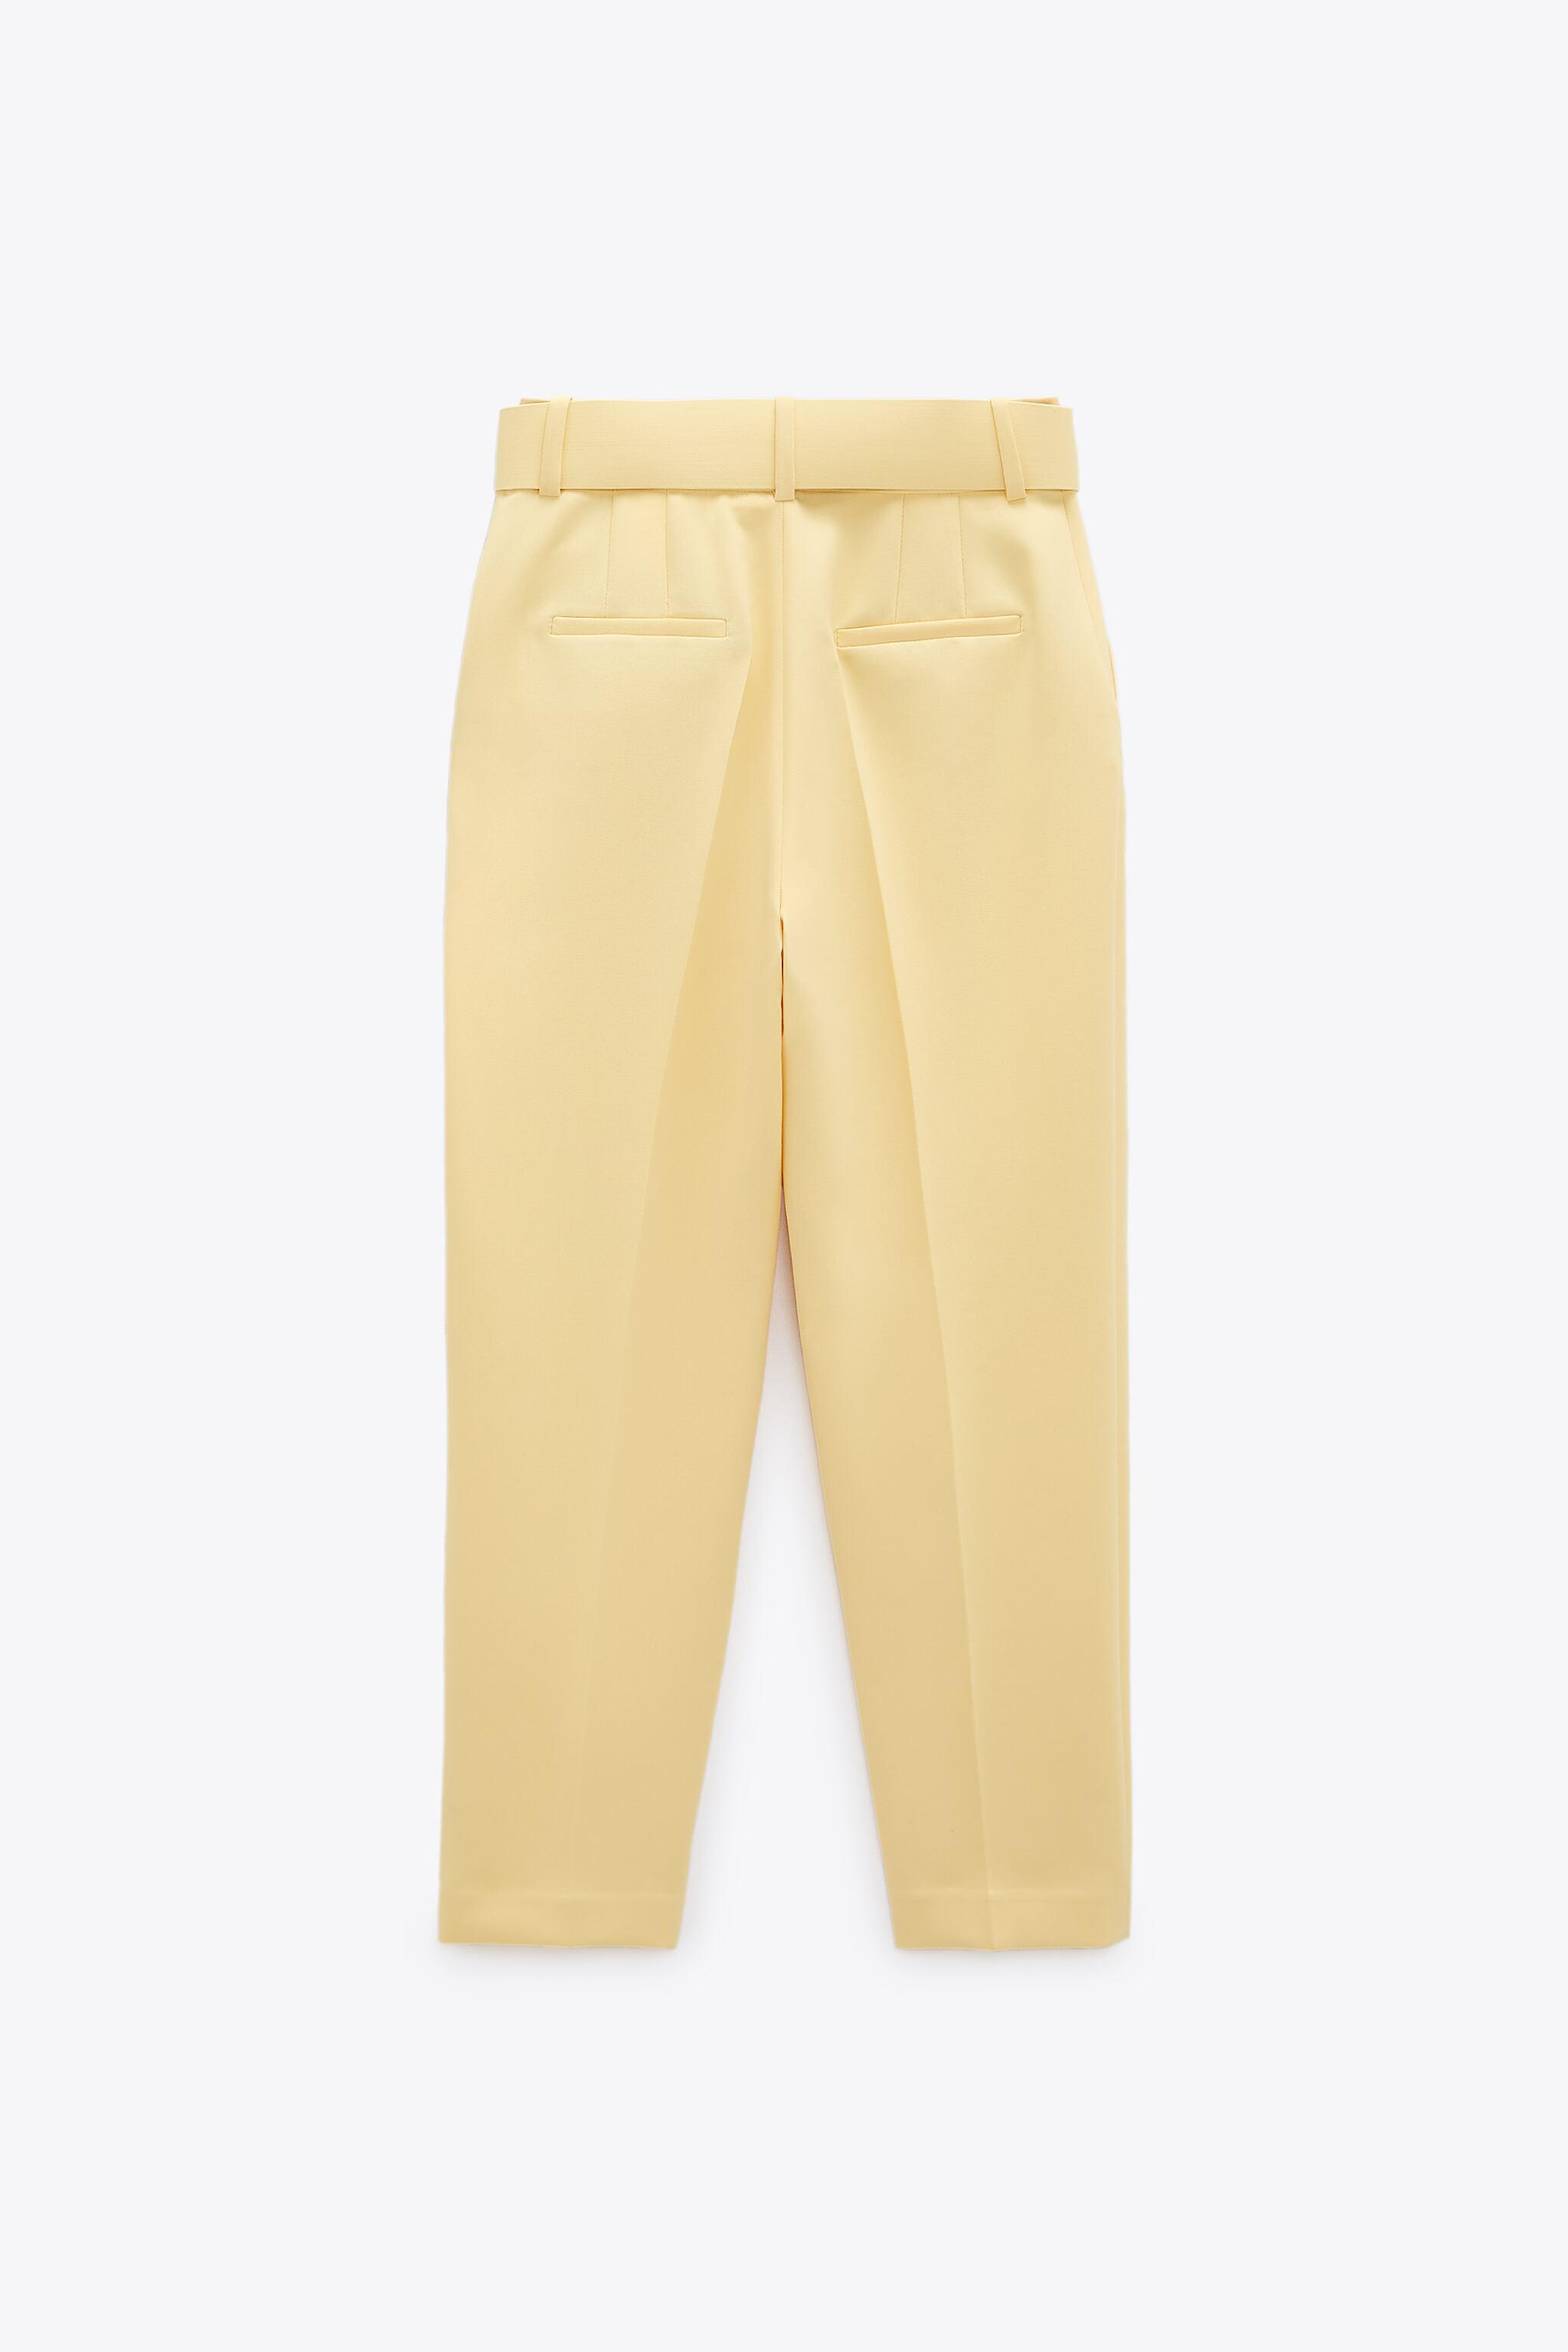 HIGH-WAISTED BELTED PANTS 7